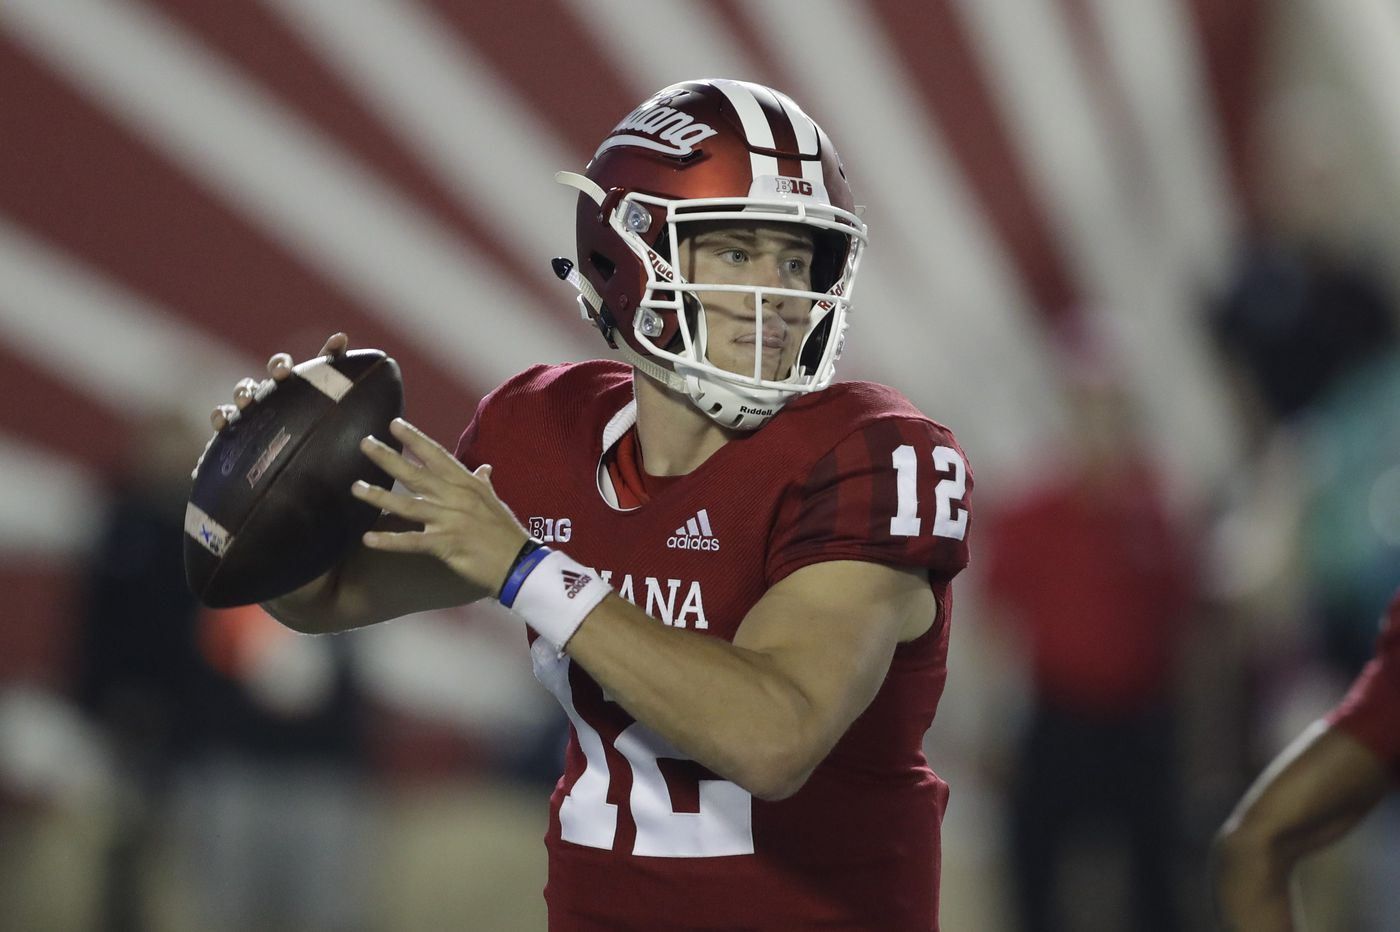 Penn State at Indiana: A meeting of two frustrated teams